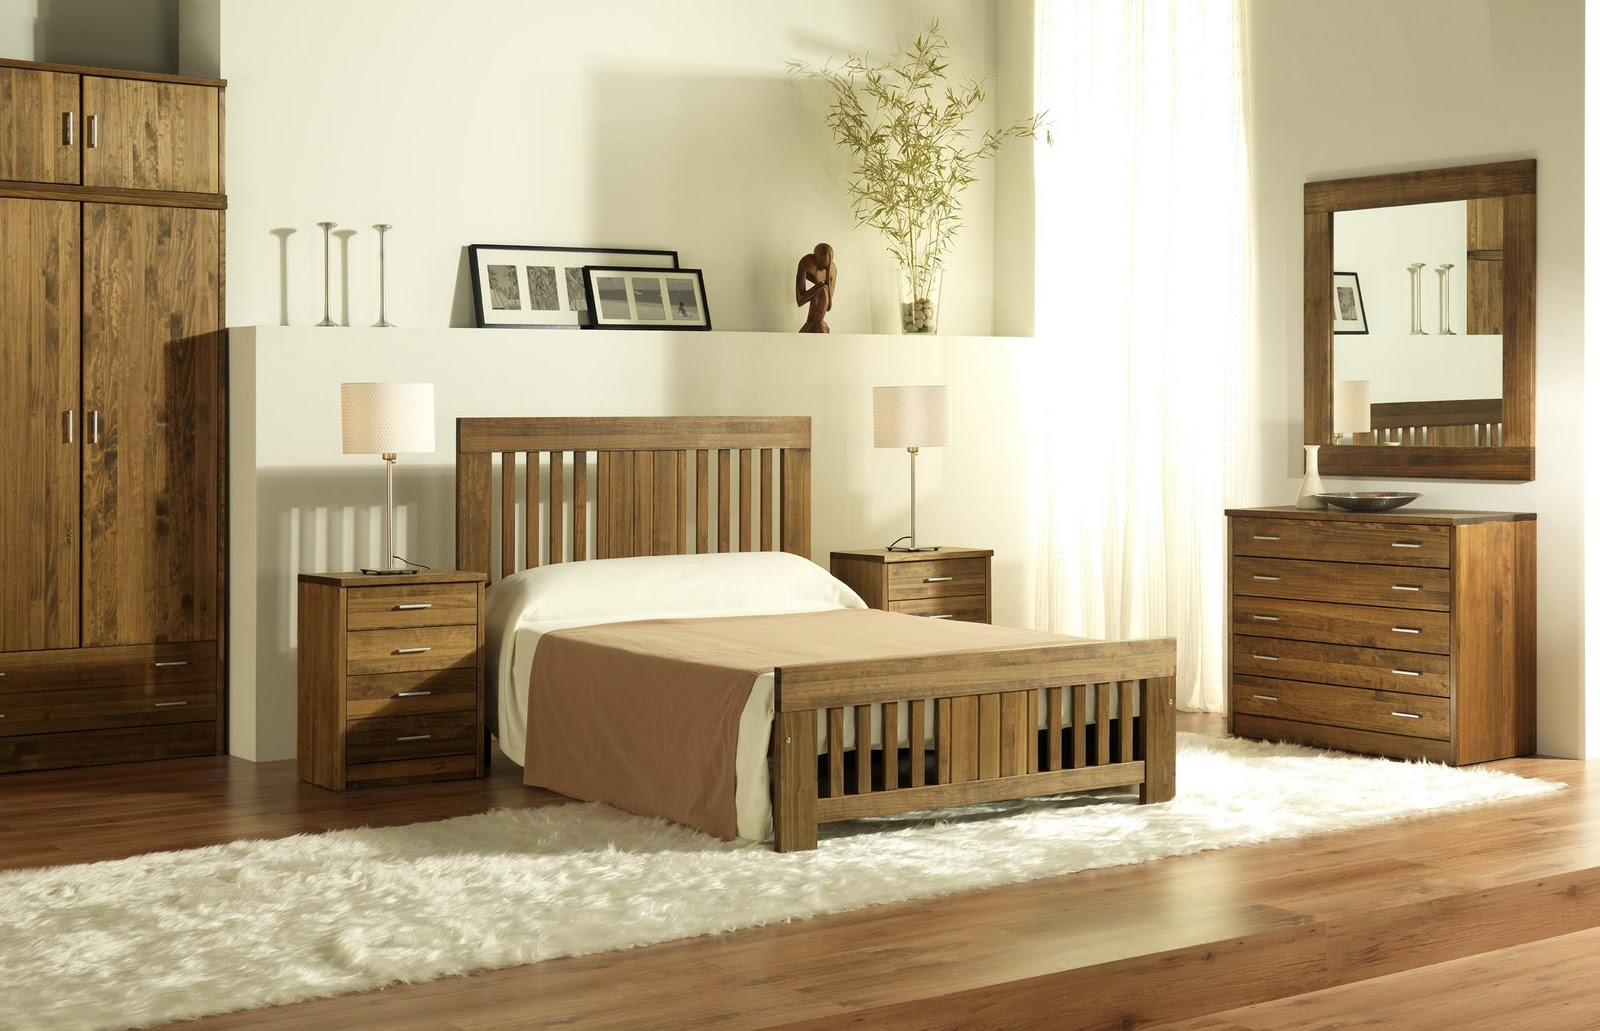 Muebles toscapino pino - Muebles madera ...